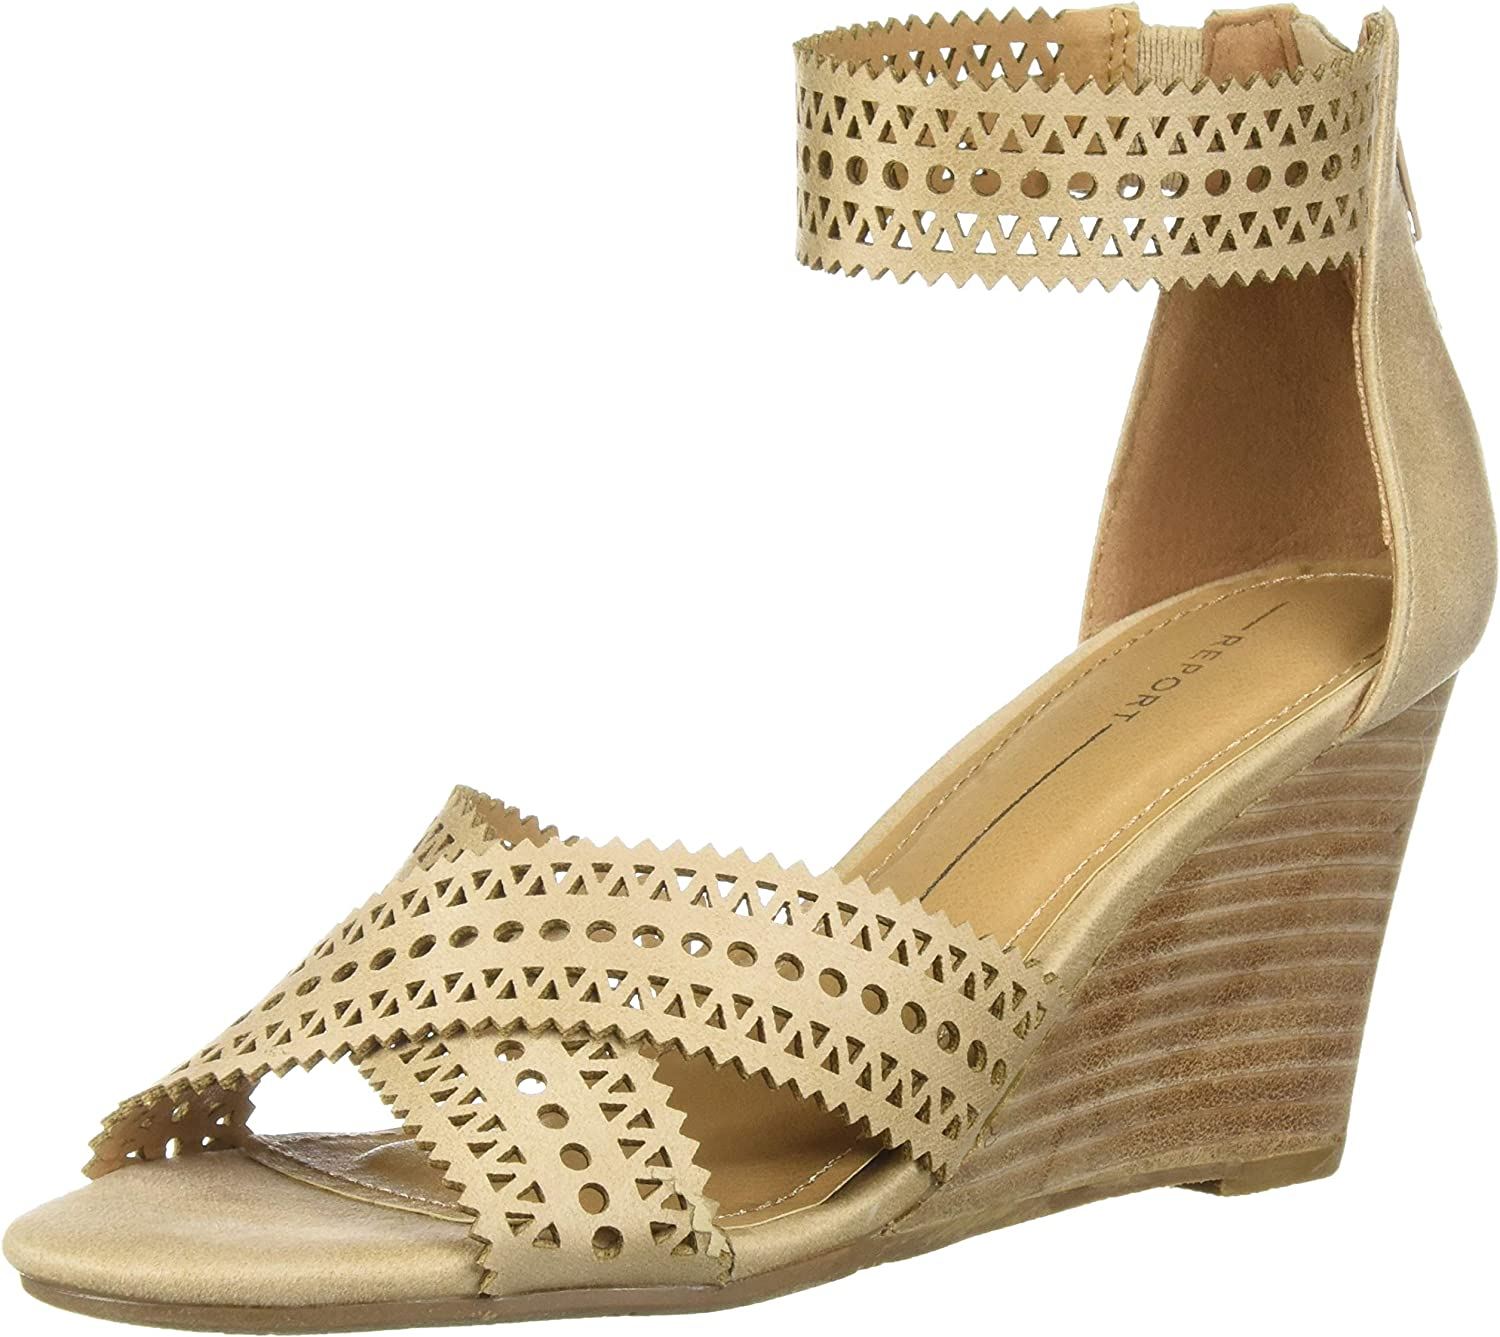 Report New product! New type Women's Sharon Sandal Wedge Fixed price for sale